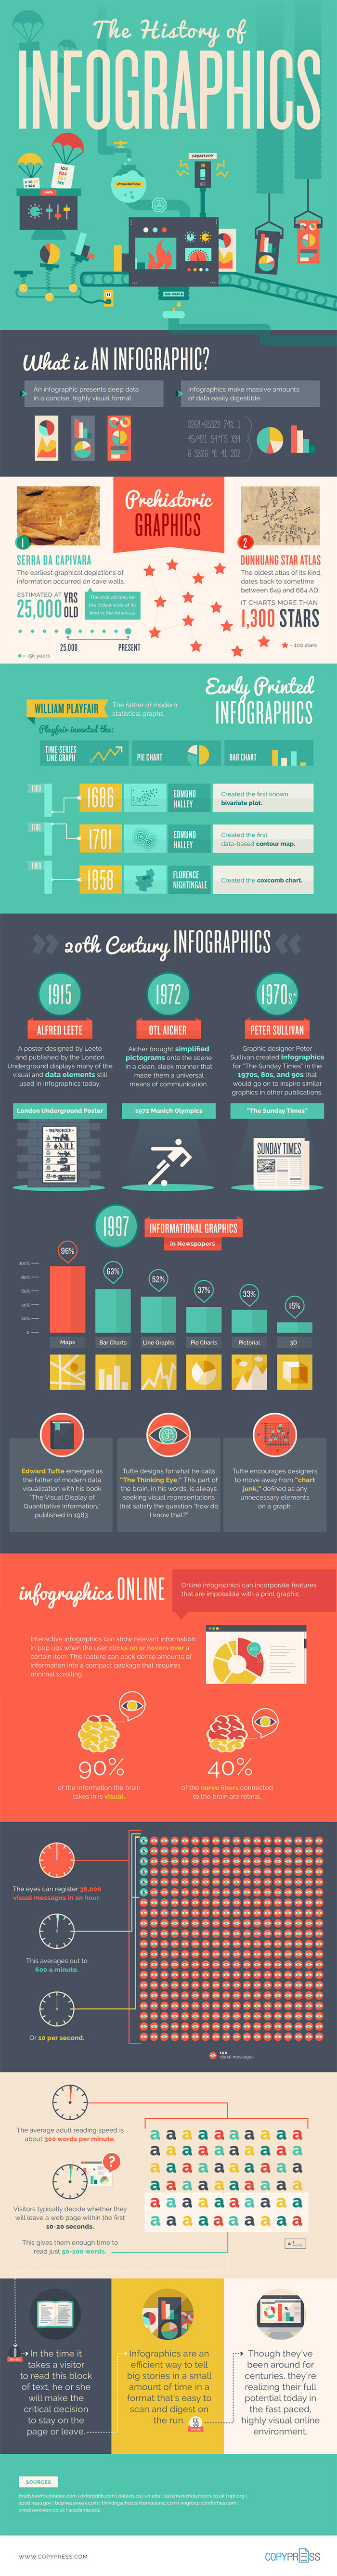 learn-the-history-of-infographics